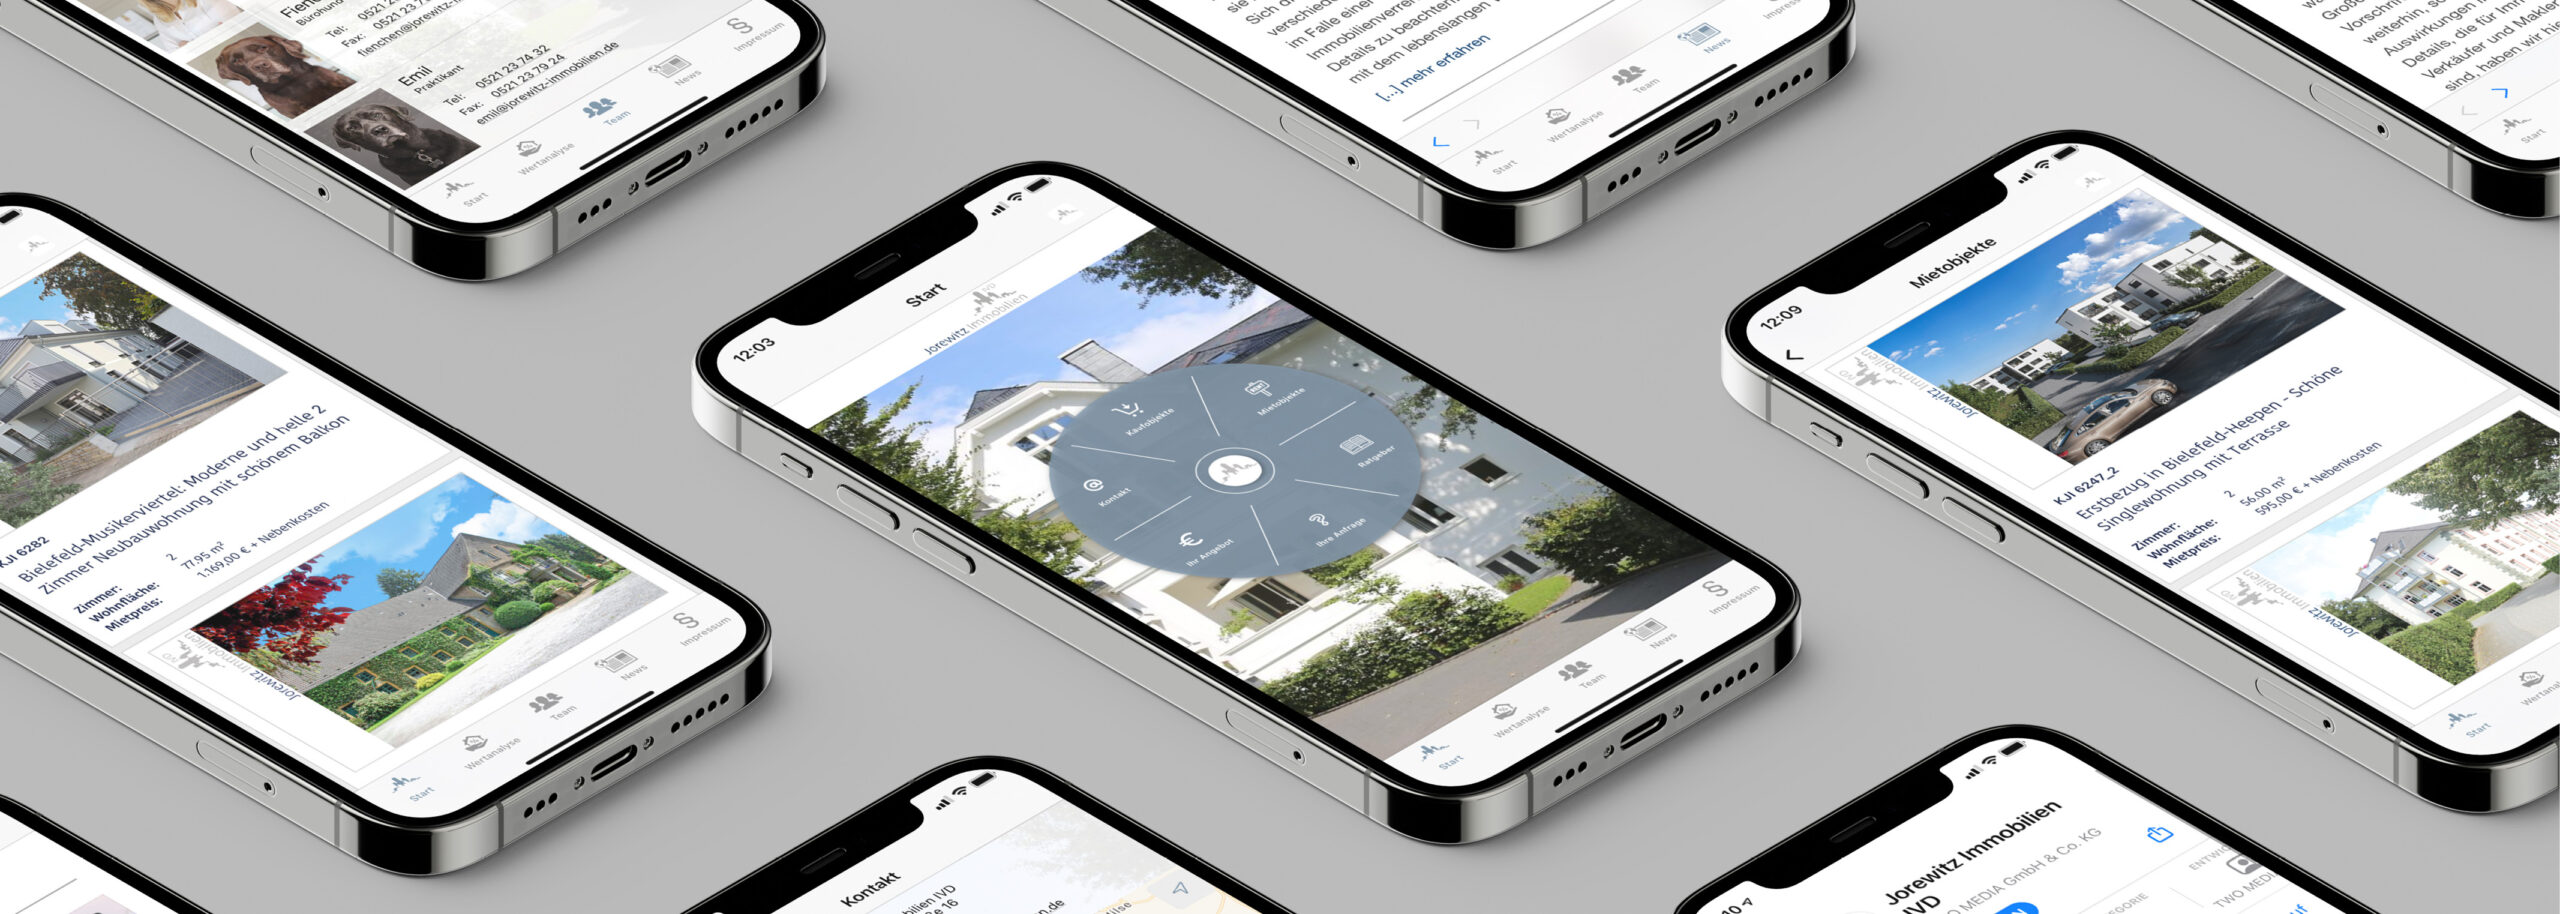 Immobilien App_Slider 2 Homepage